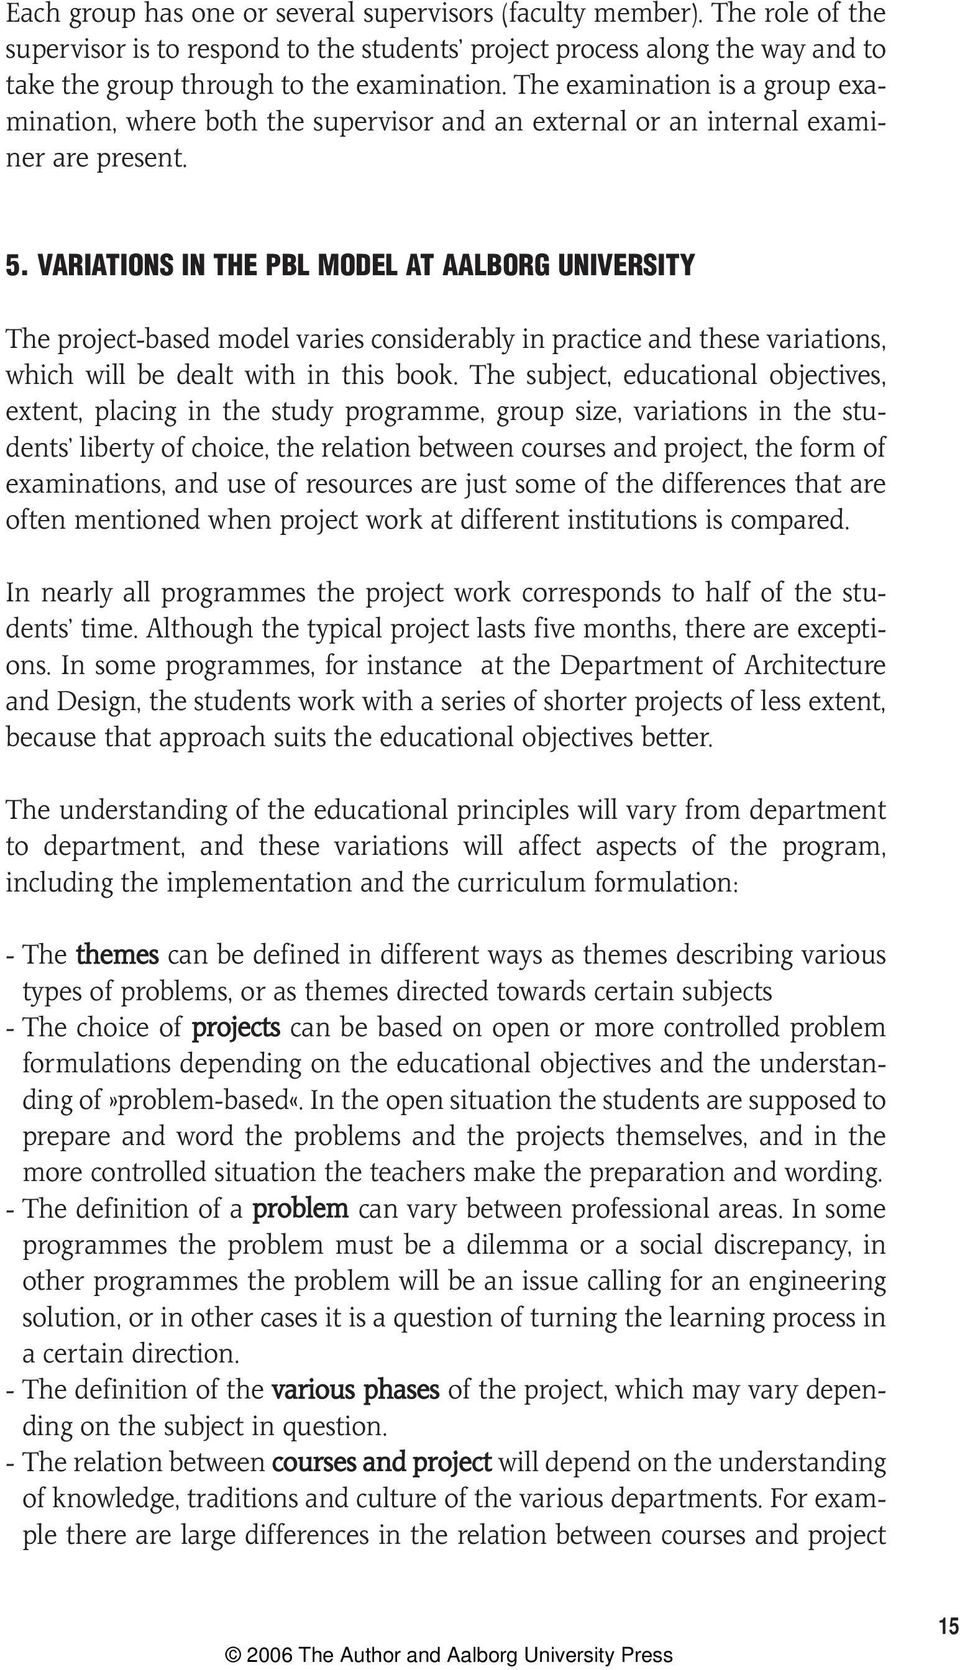 VARIATIONS IN THE PBL MODEL AT AALBORG UNIVERSITY The project-based model varies considerably in practice and these variations, which will be dealt with in this book.